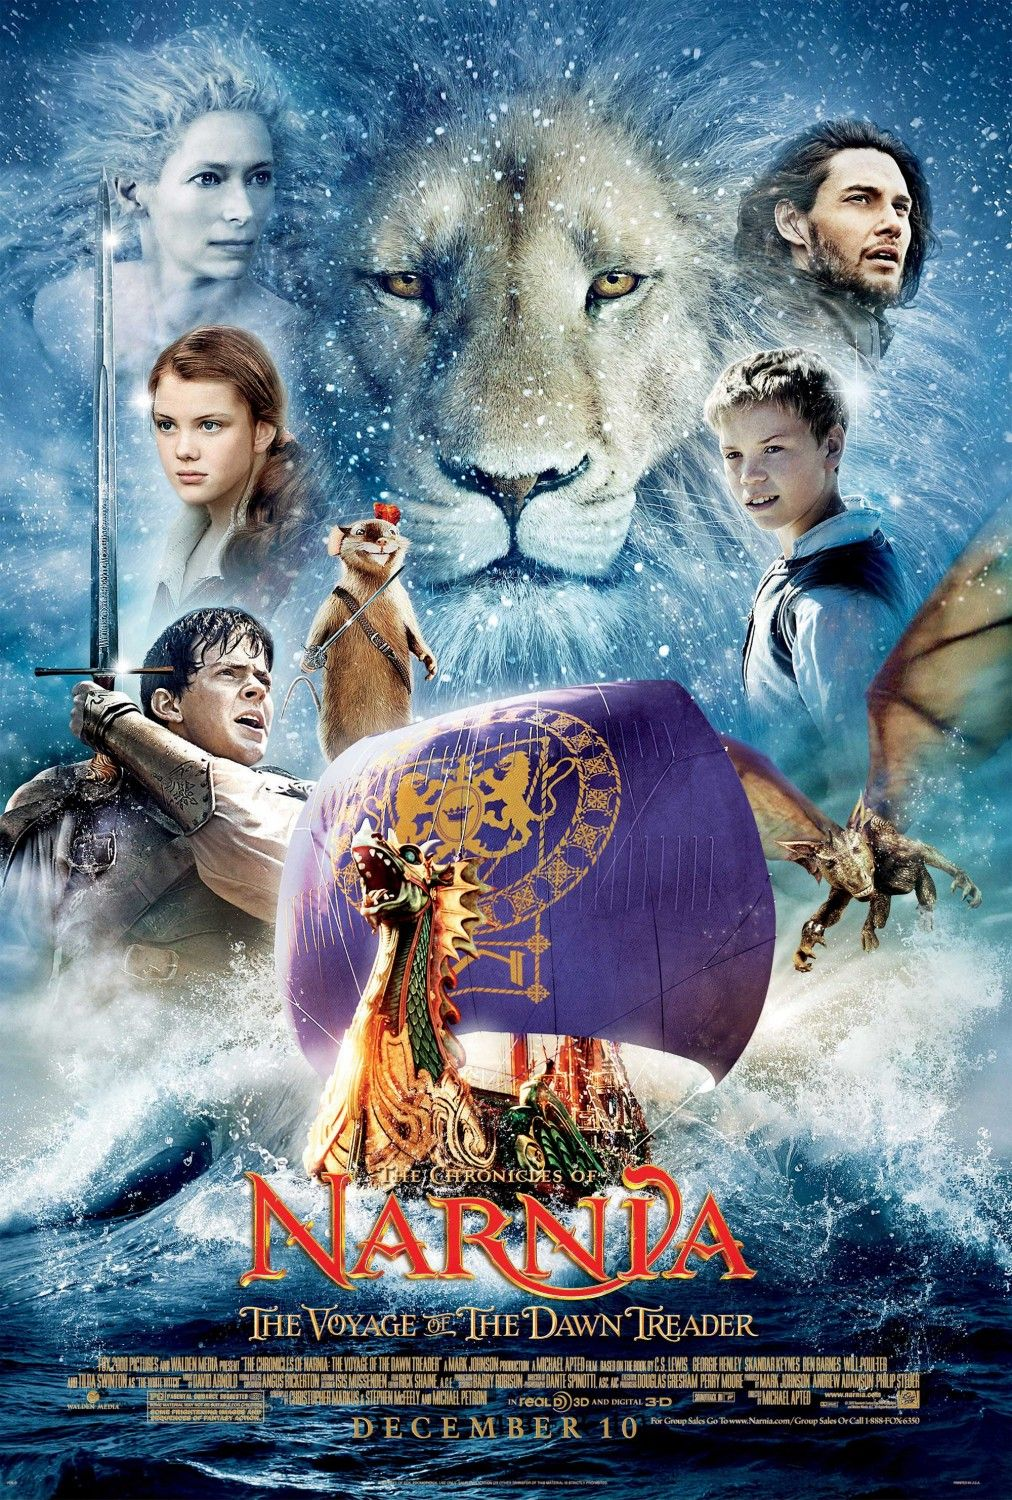 Movie chronicles of narnia 2